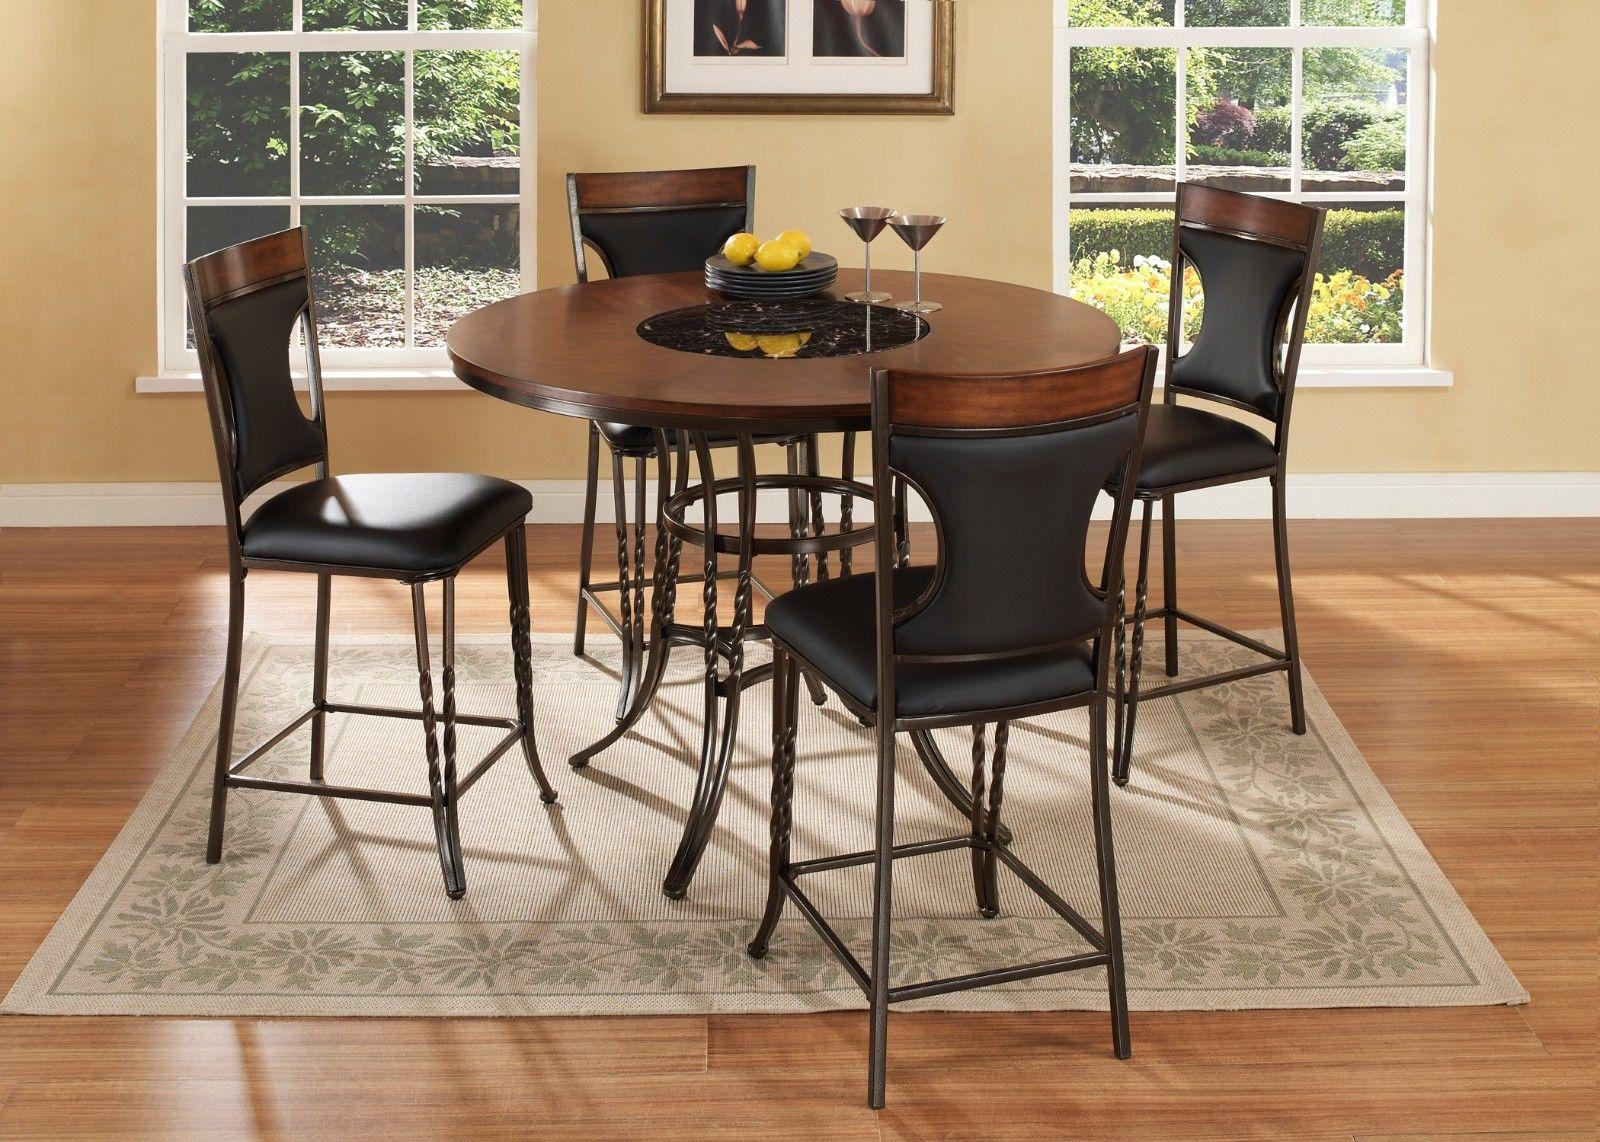 Mcferran Dynasty Contemporary Round Table Counter High Dining Room Set 5Pcs